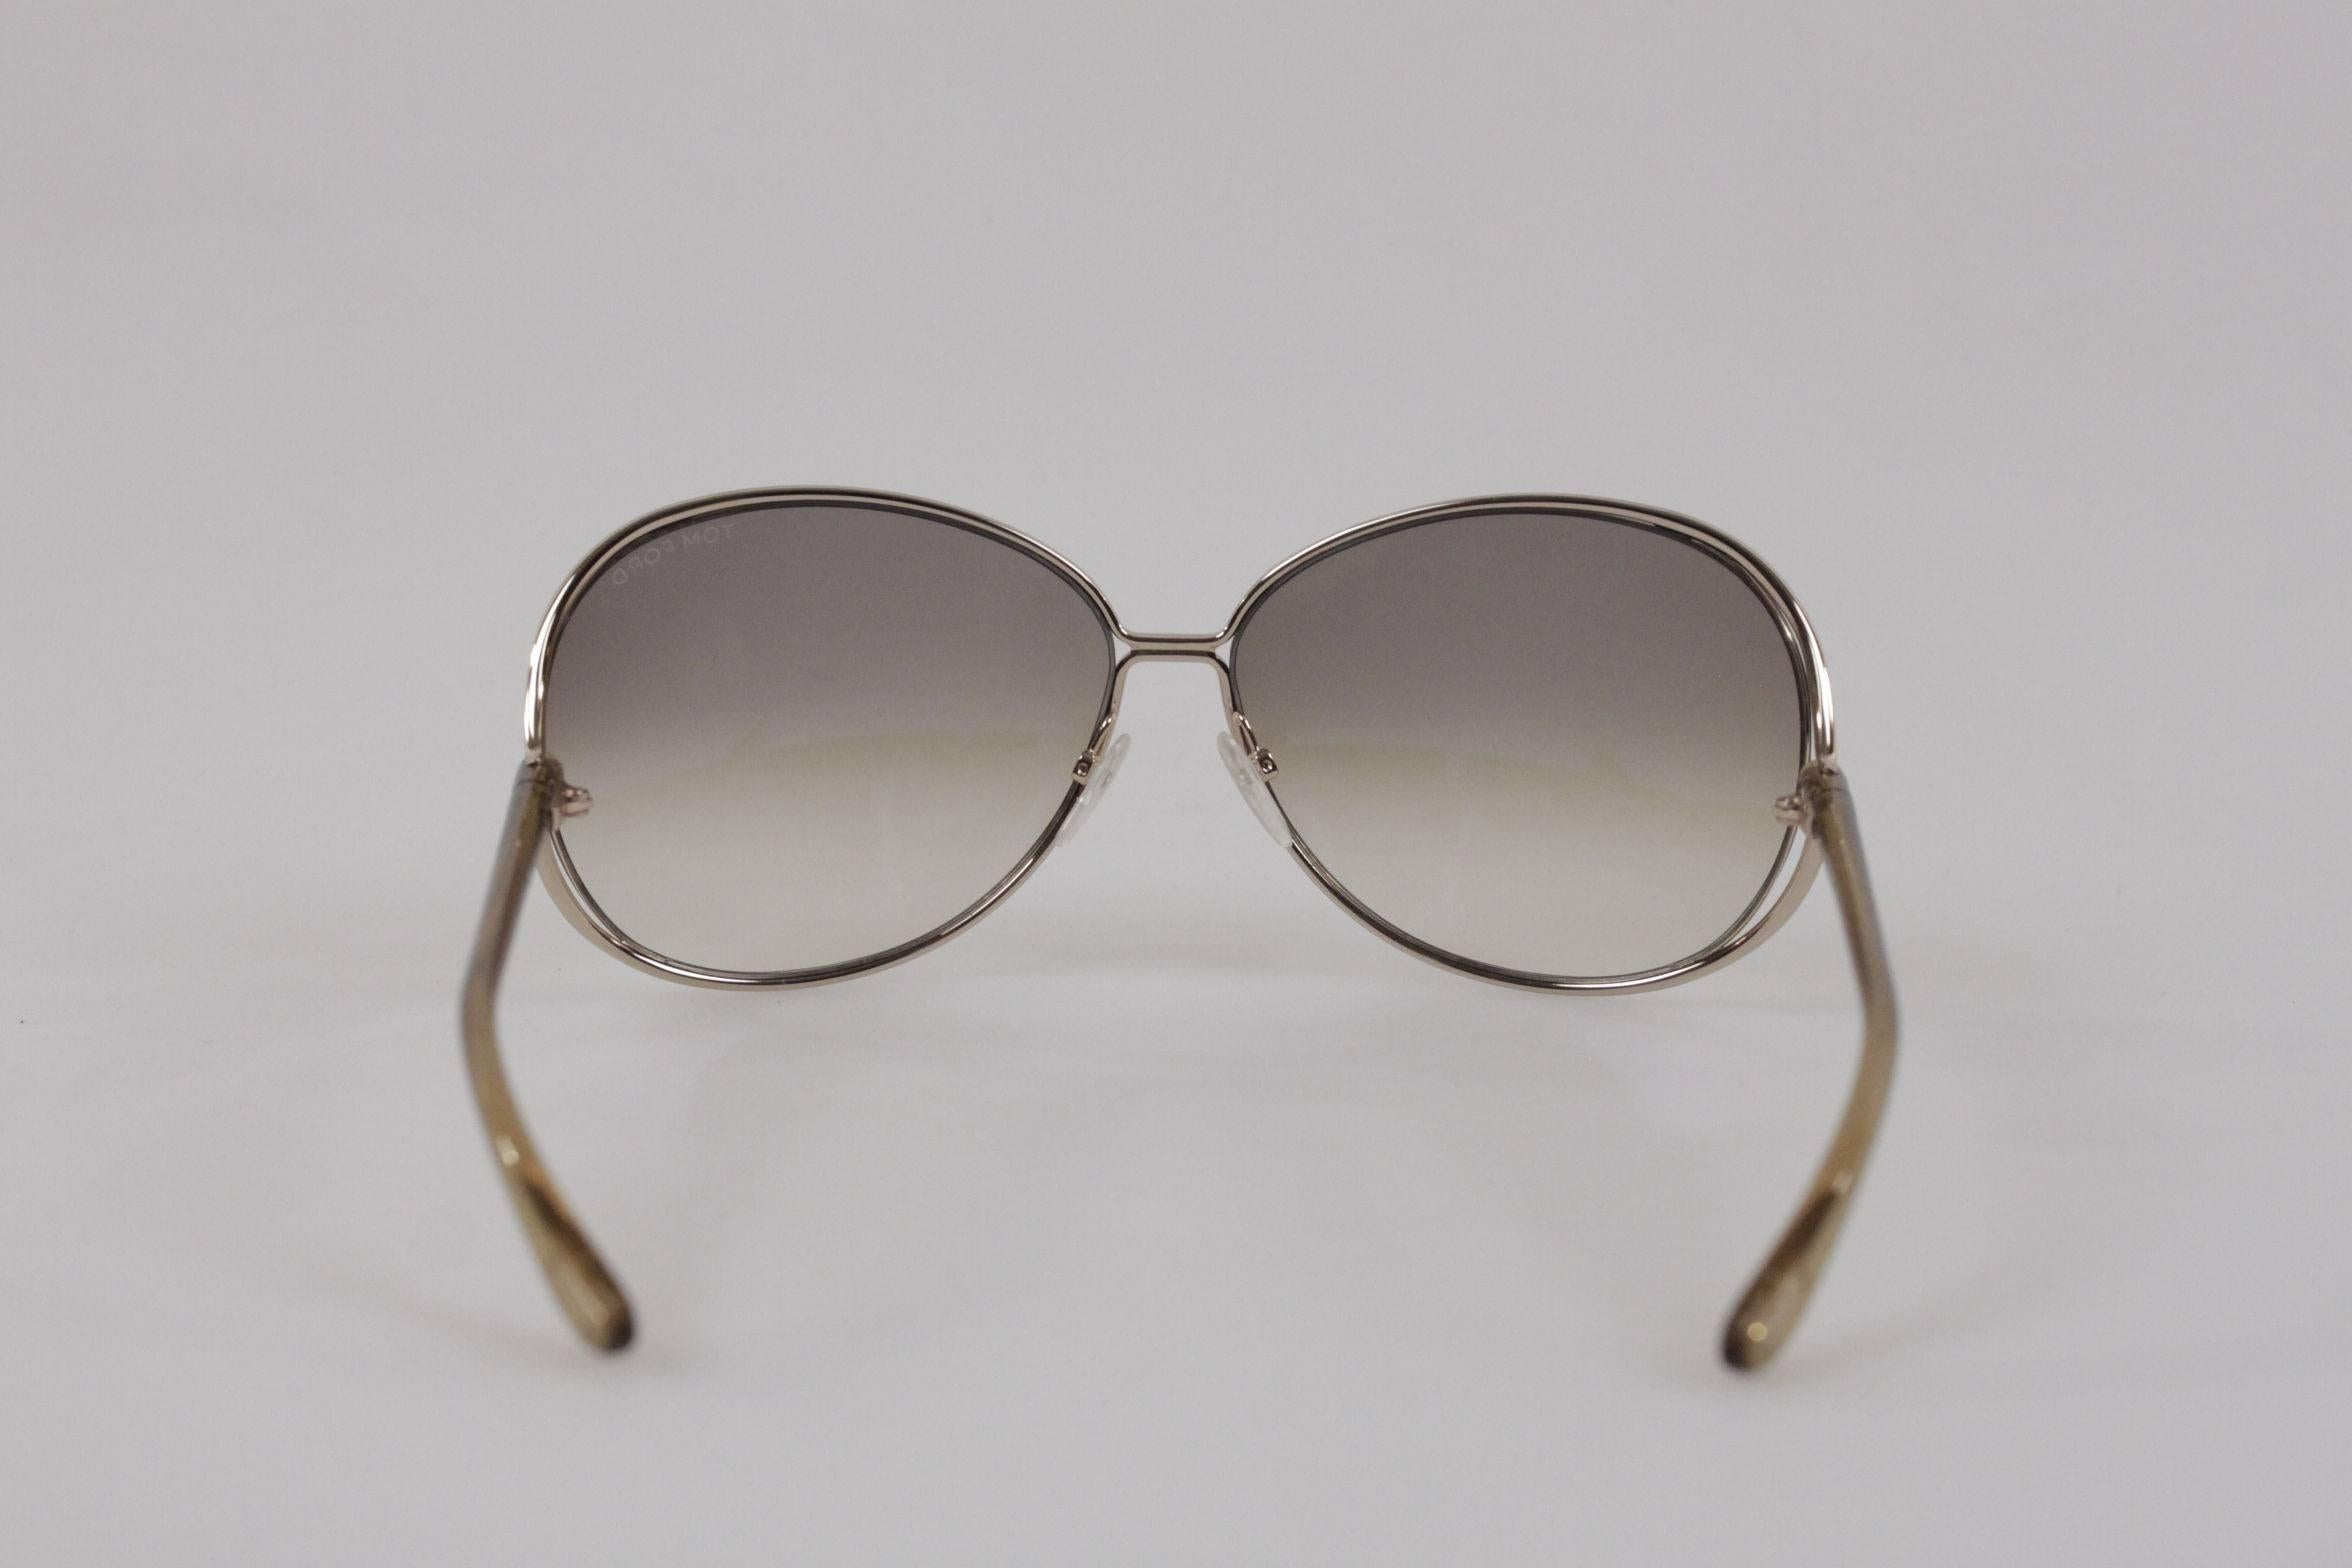 a164a39c22 TOM FORD SUNGLASSES mod. CLEMENCE TF 158 28F 65 13 Round MINT Eyewear For  Sale at 1stdibs